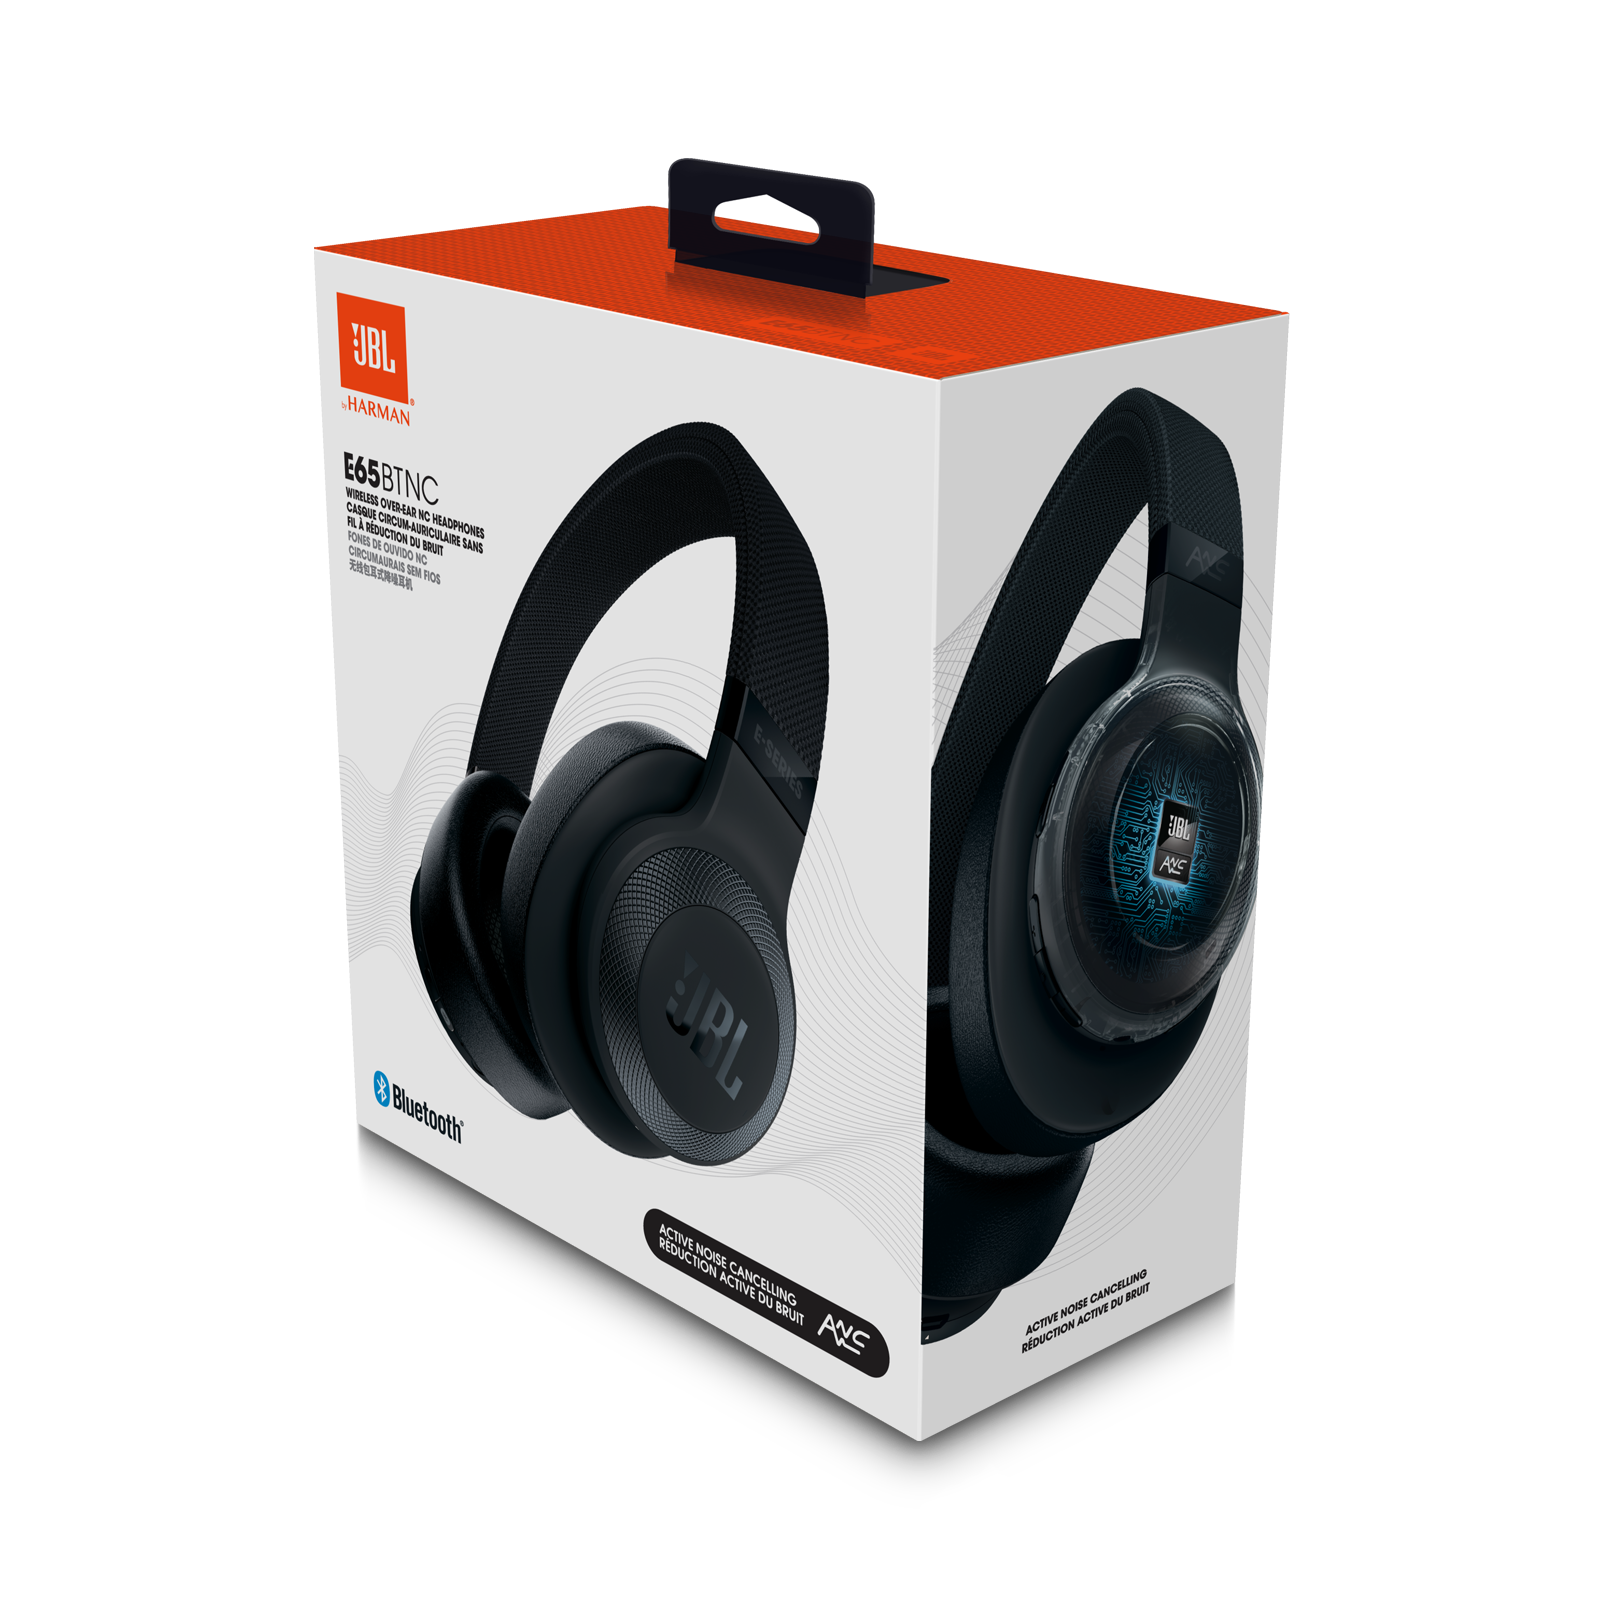 Jbl E65btnc Wireless Over Ear Noise Cancelling Headphones Building Canceling Manuals Downloads